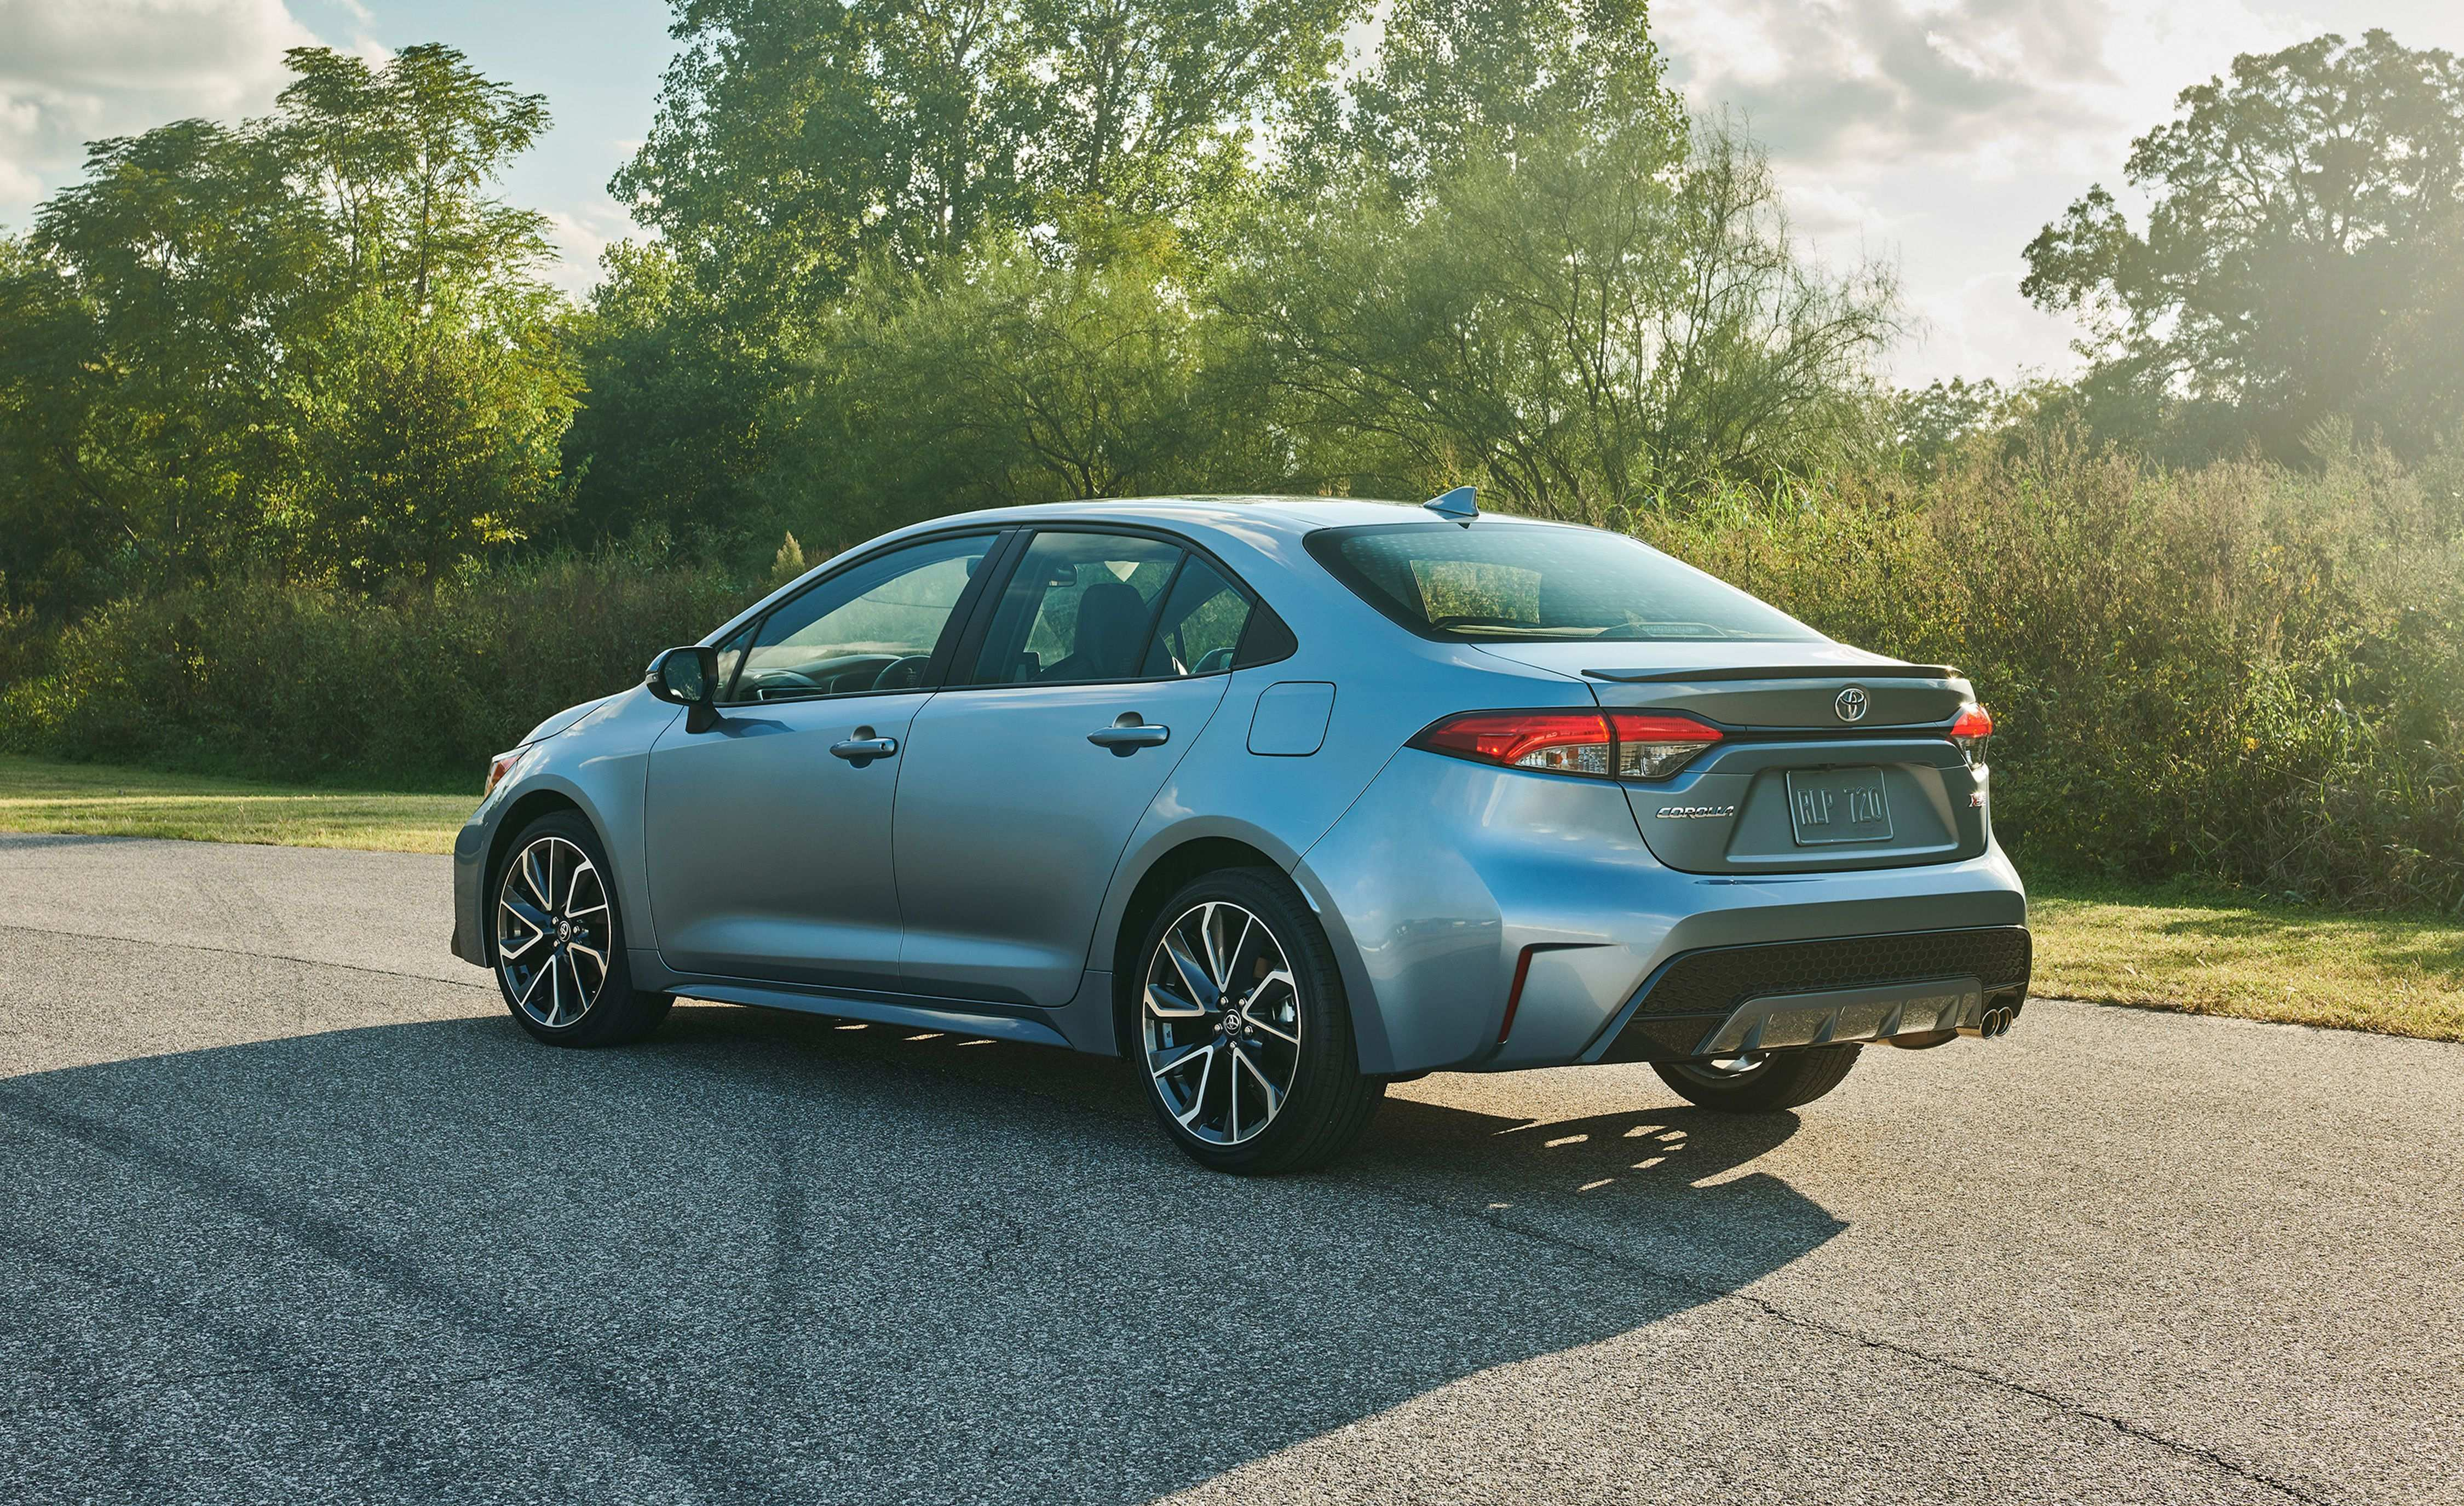 21 New 2020 Toyota Corolla Exterior And Interior